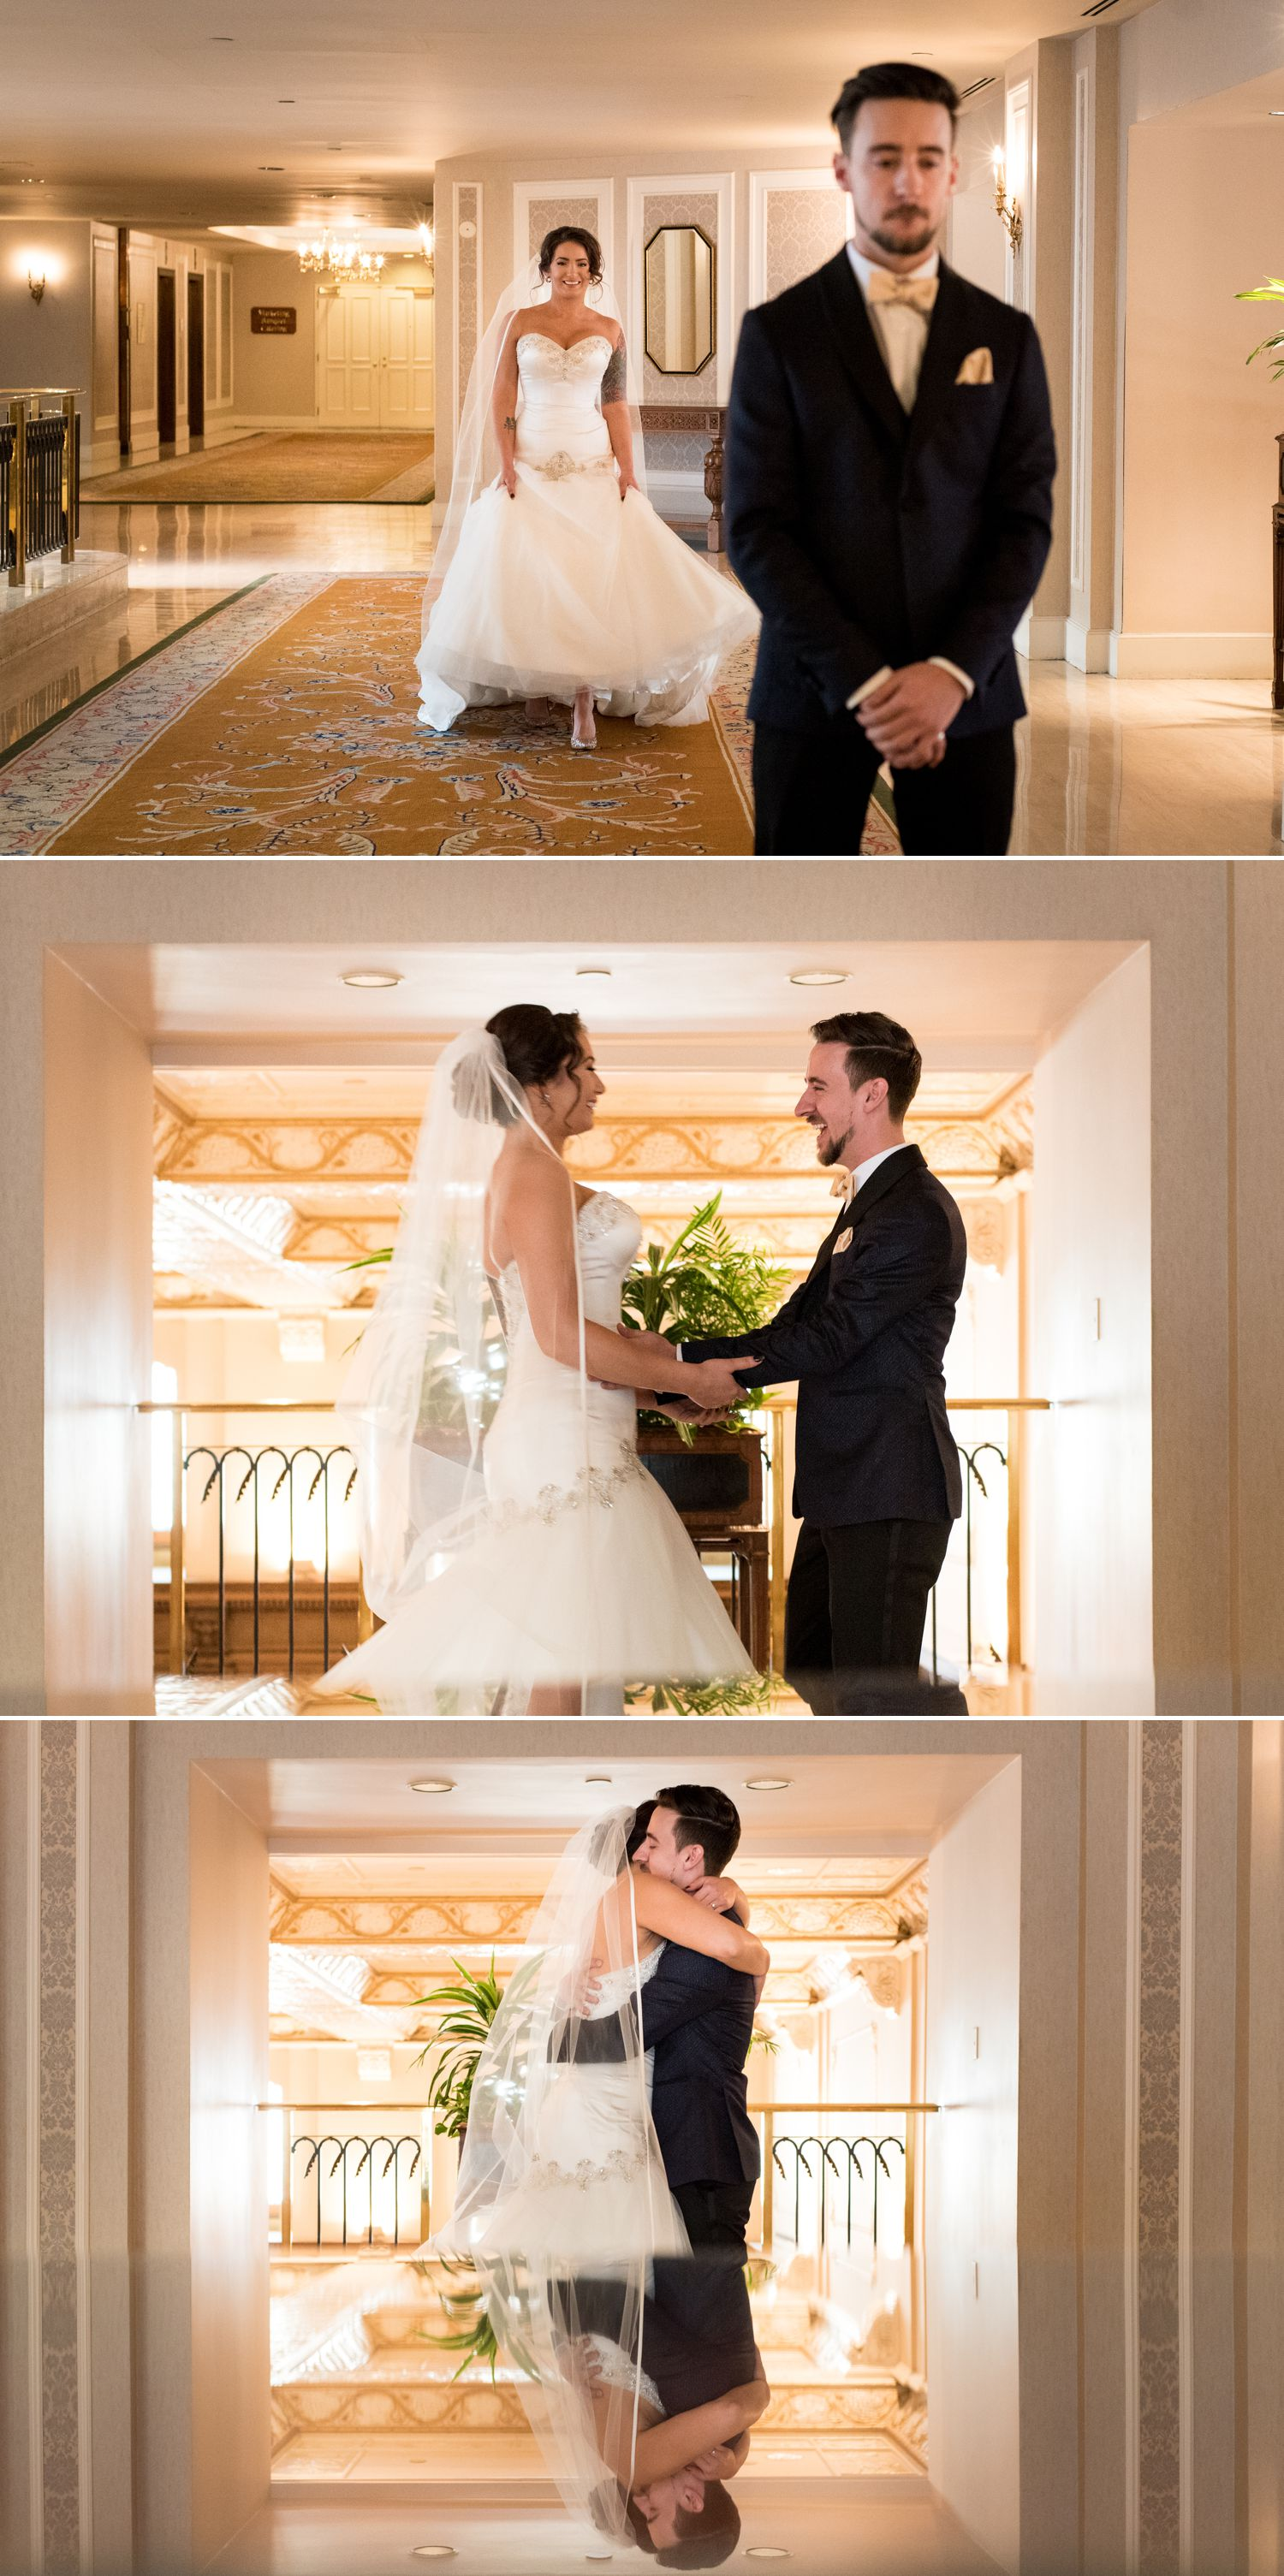 The bride and the groom during their 'First Look' at the Chateau Laurier